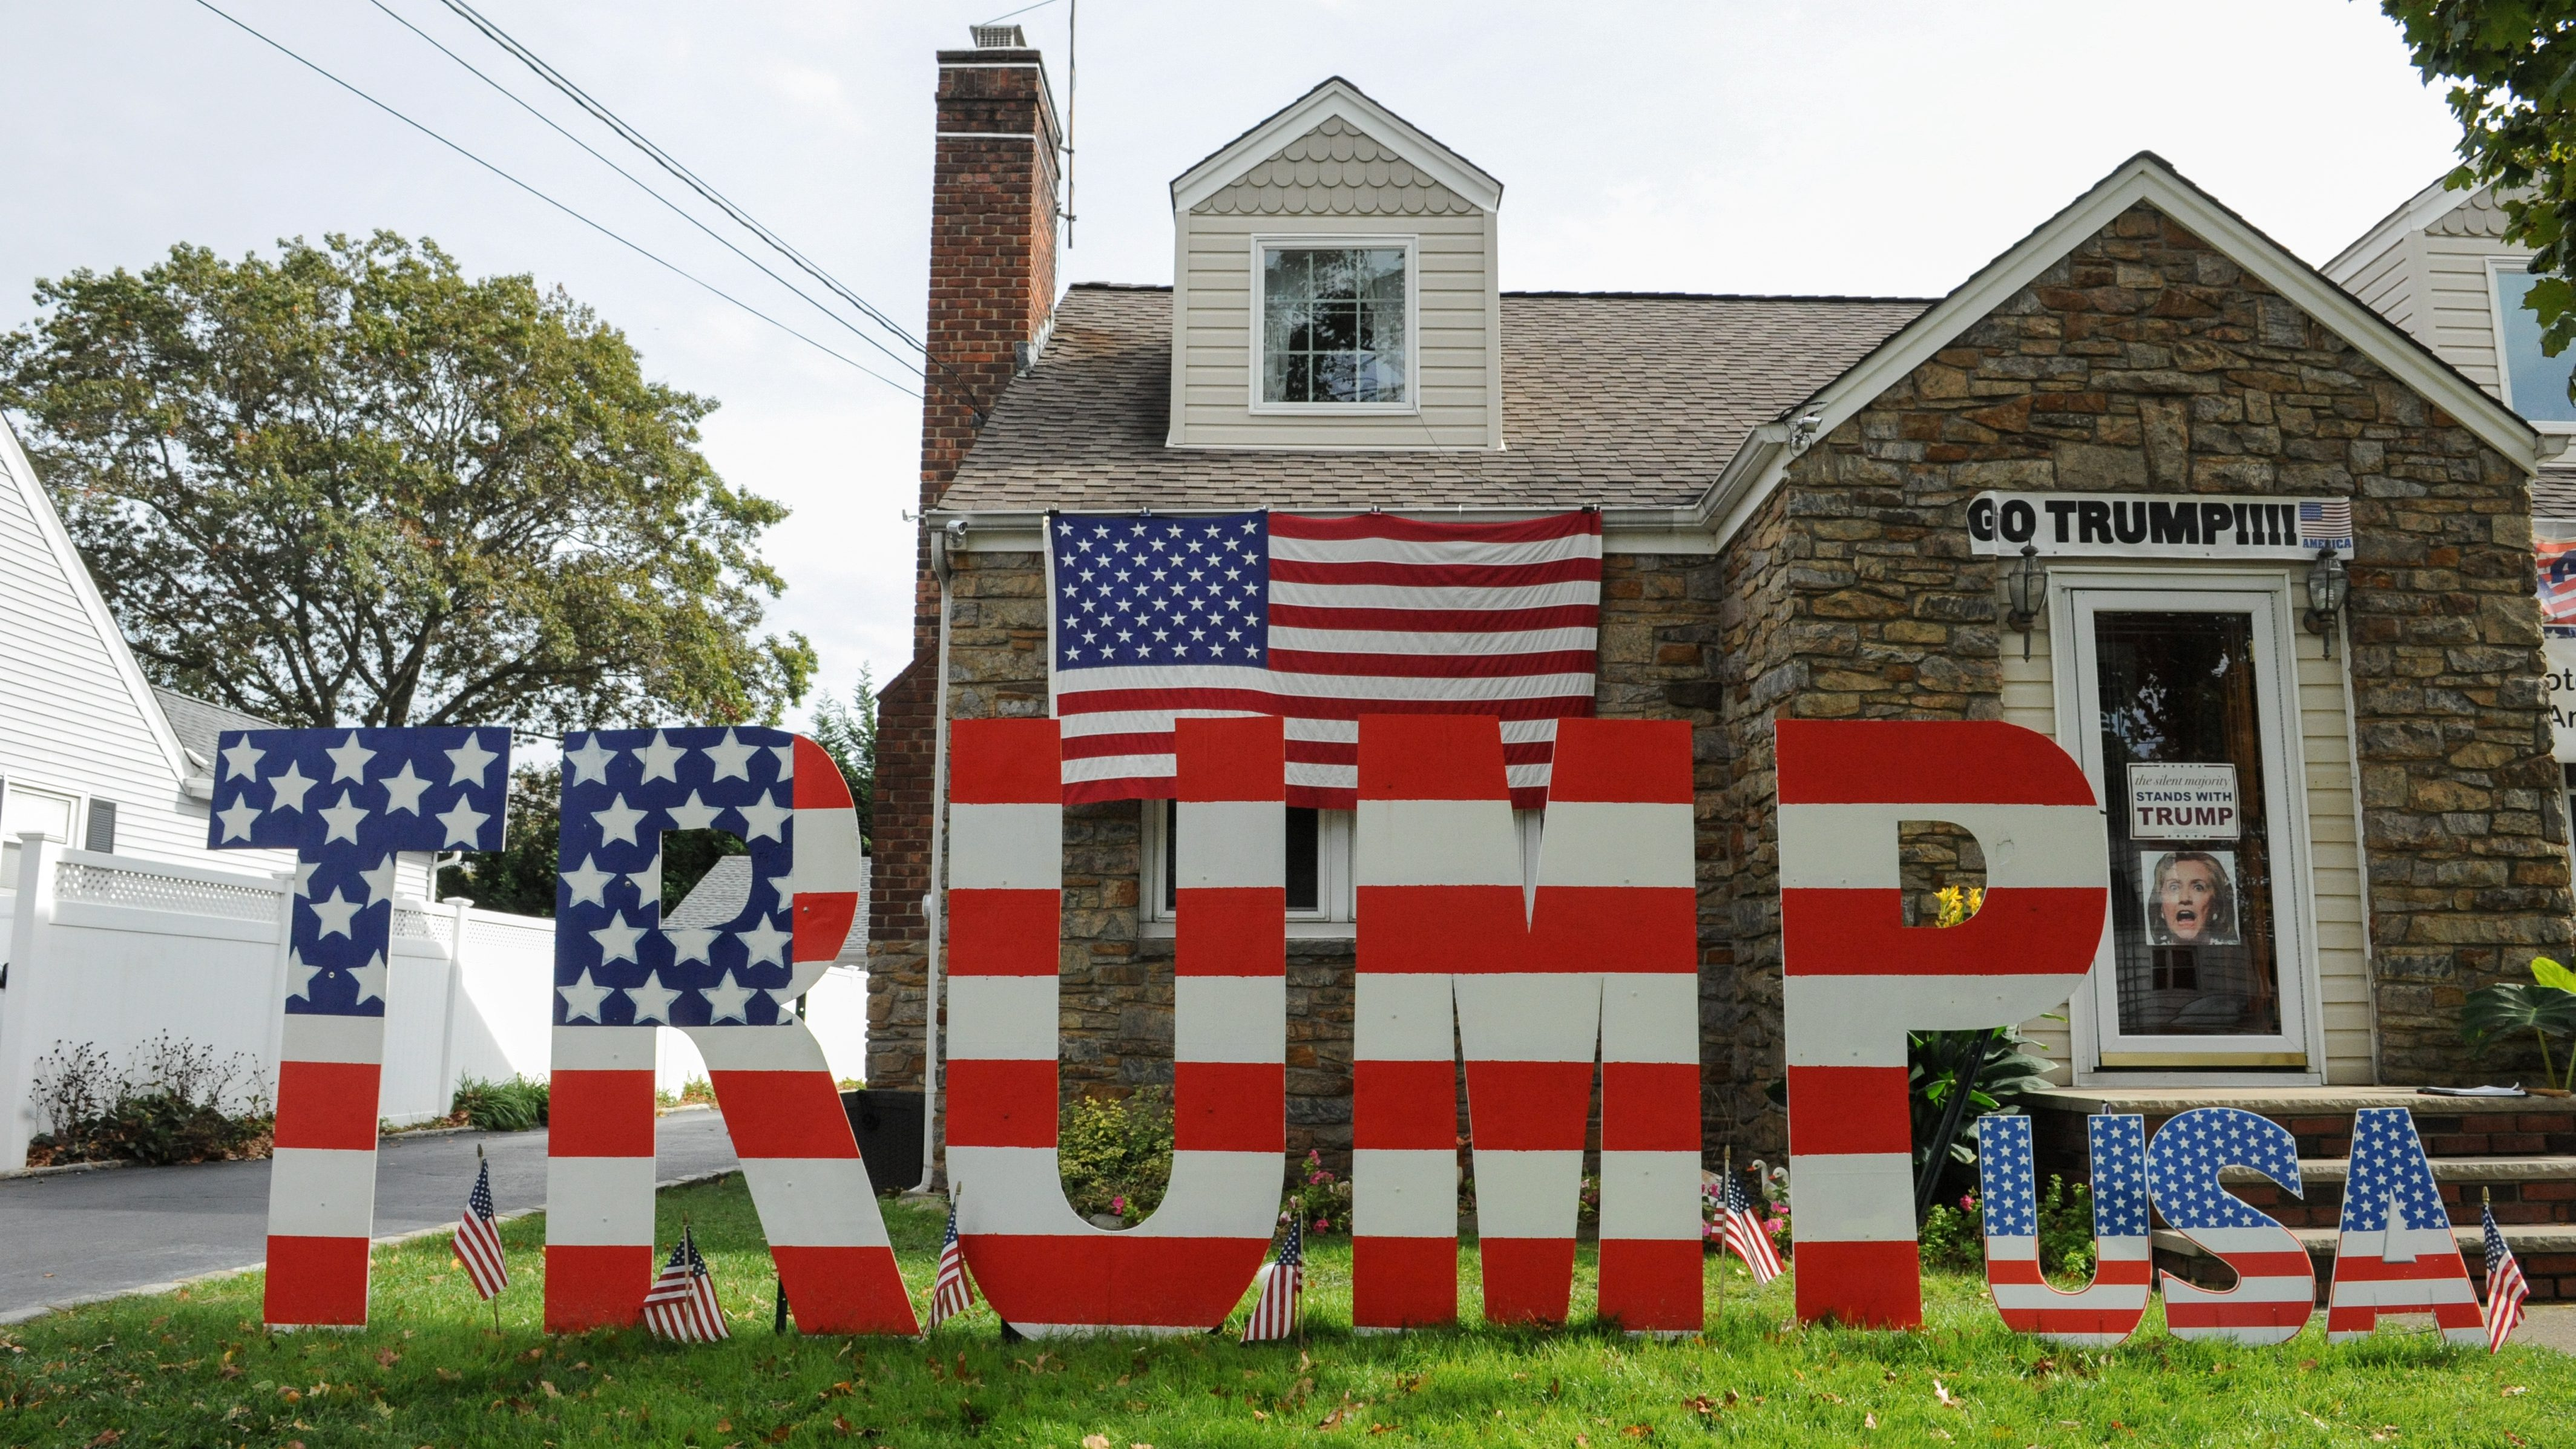 A home displaying signs supporting U.S. Republican Presidential candidate Donald Trump